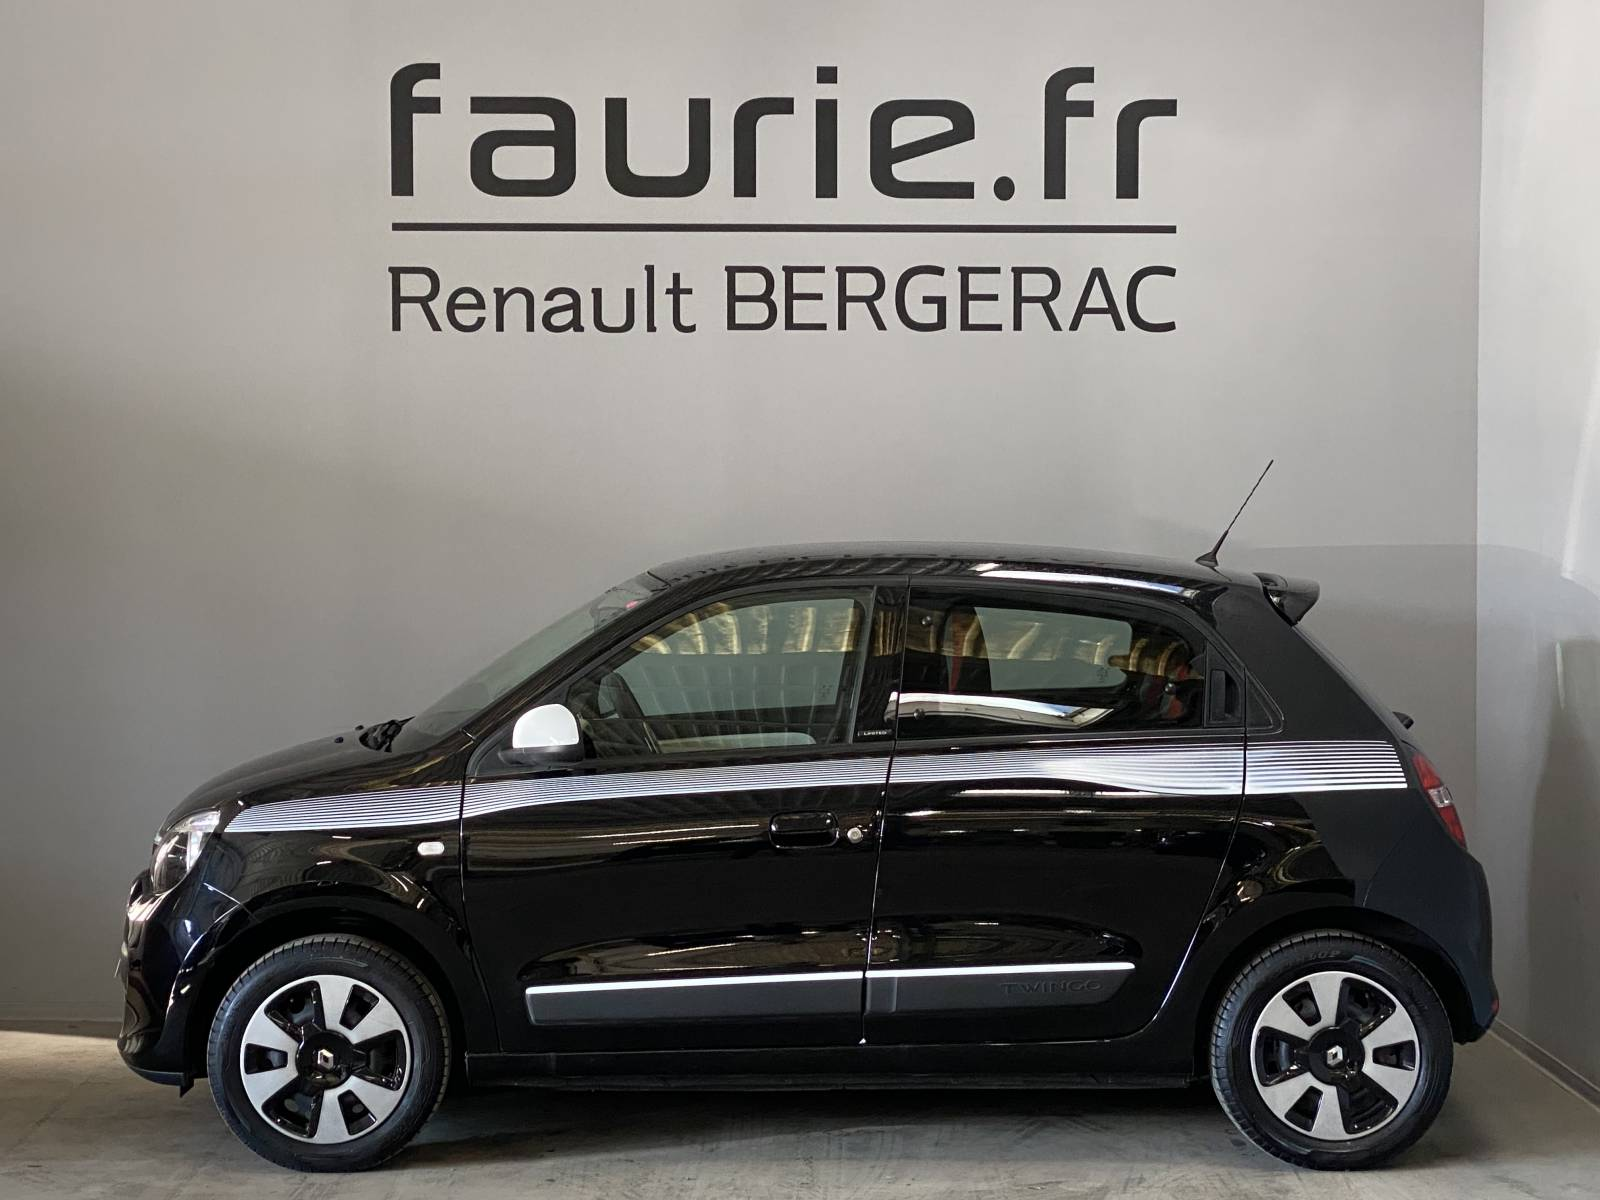 RENAULT Twingo III 0.9 TCe 90 Energy - véhicule d'occasion - Site Internet Faurie - Renault - Faurie Auto Bergerac - 24100 - Bergerac - 9